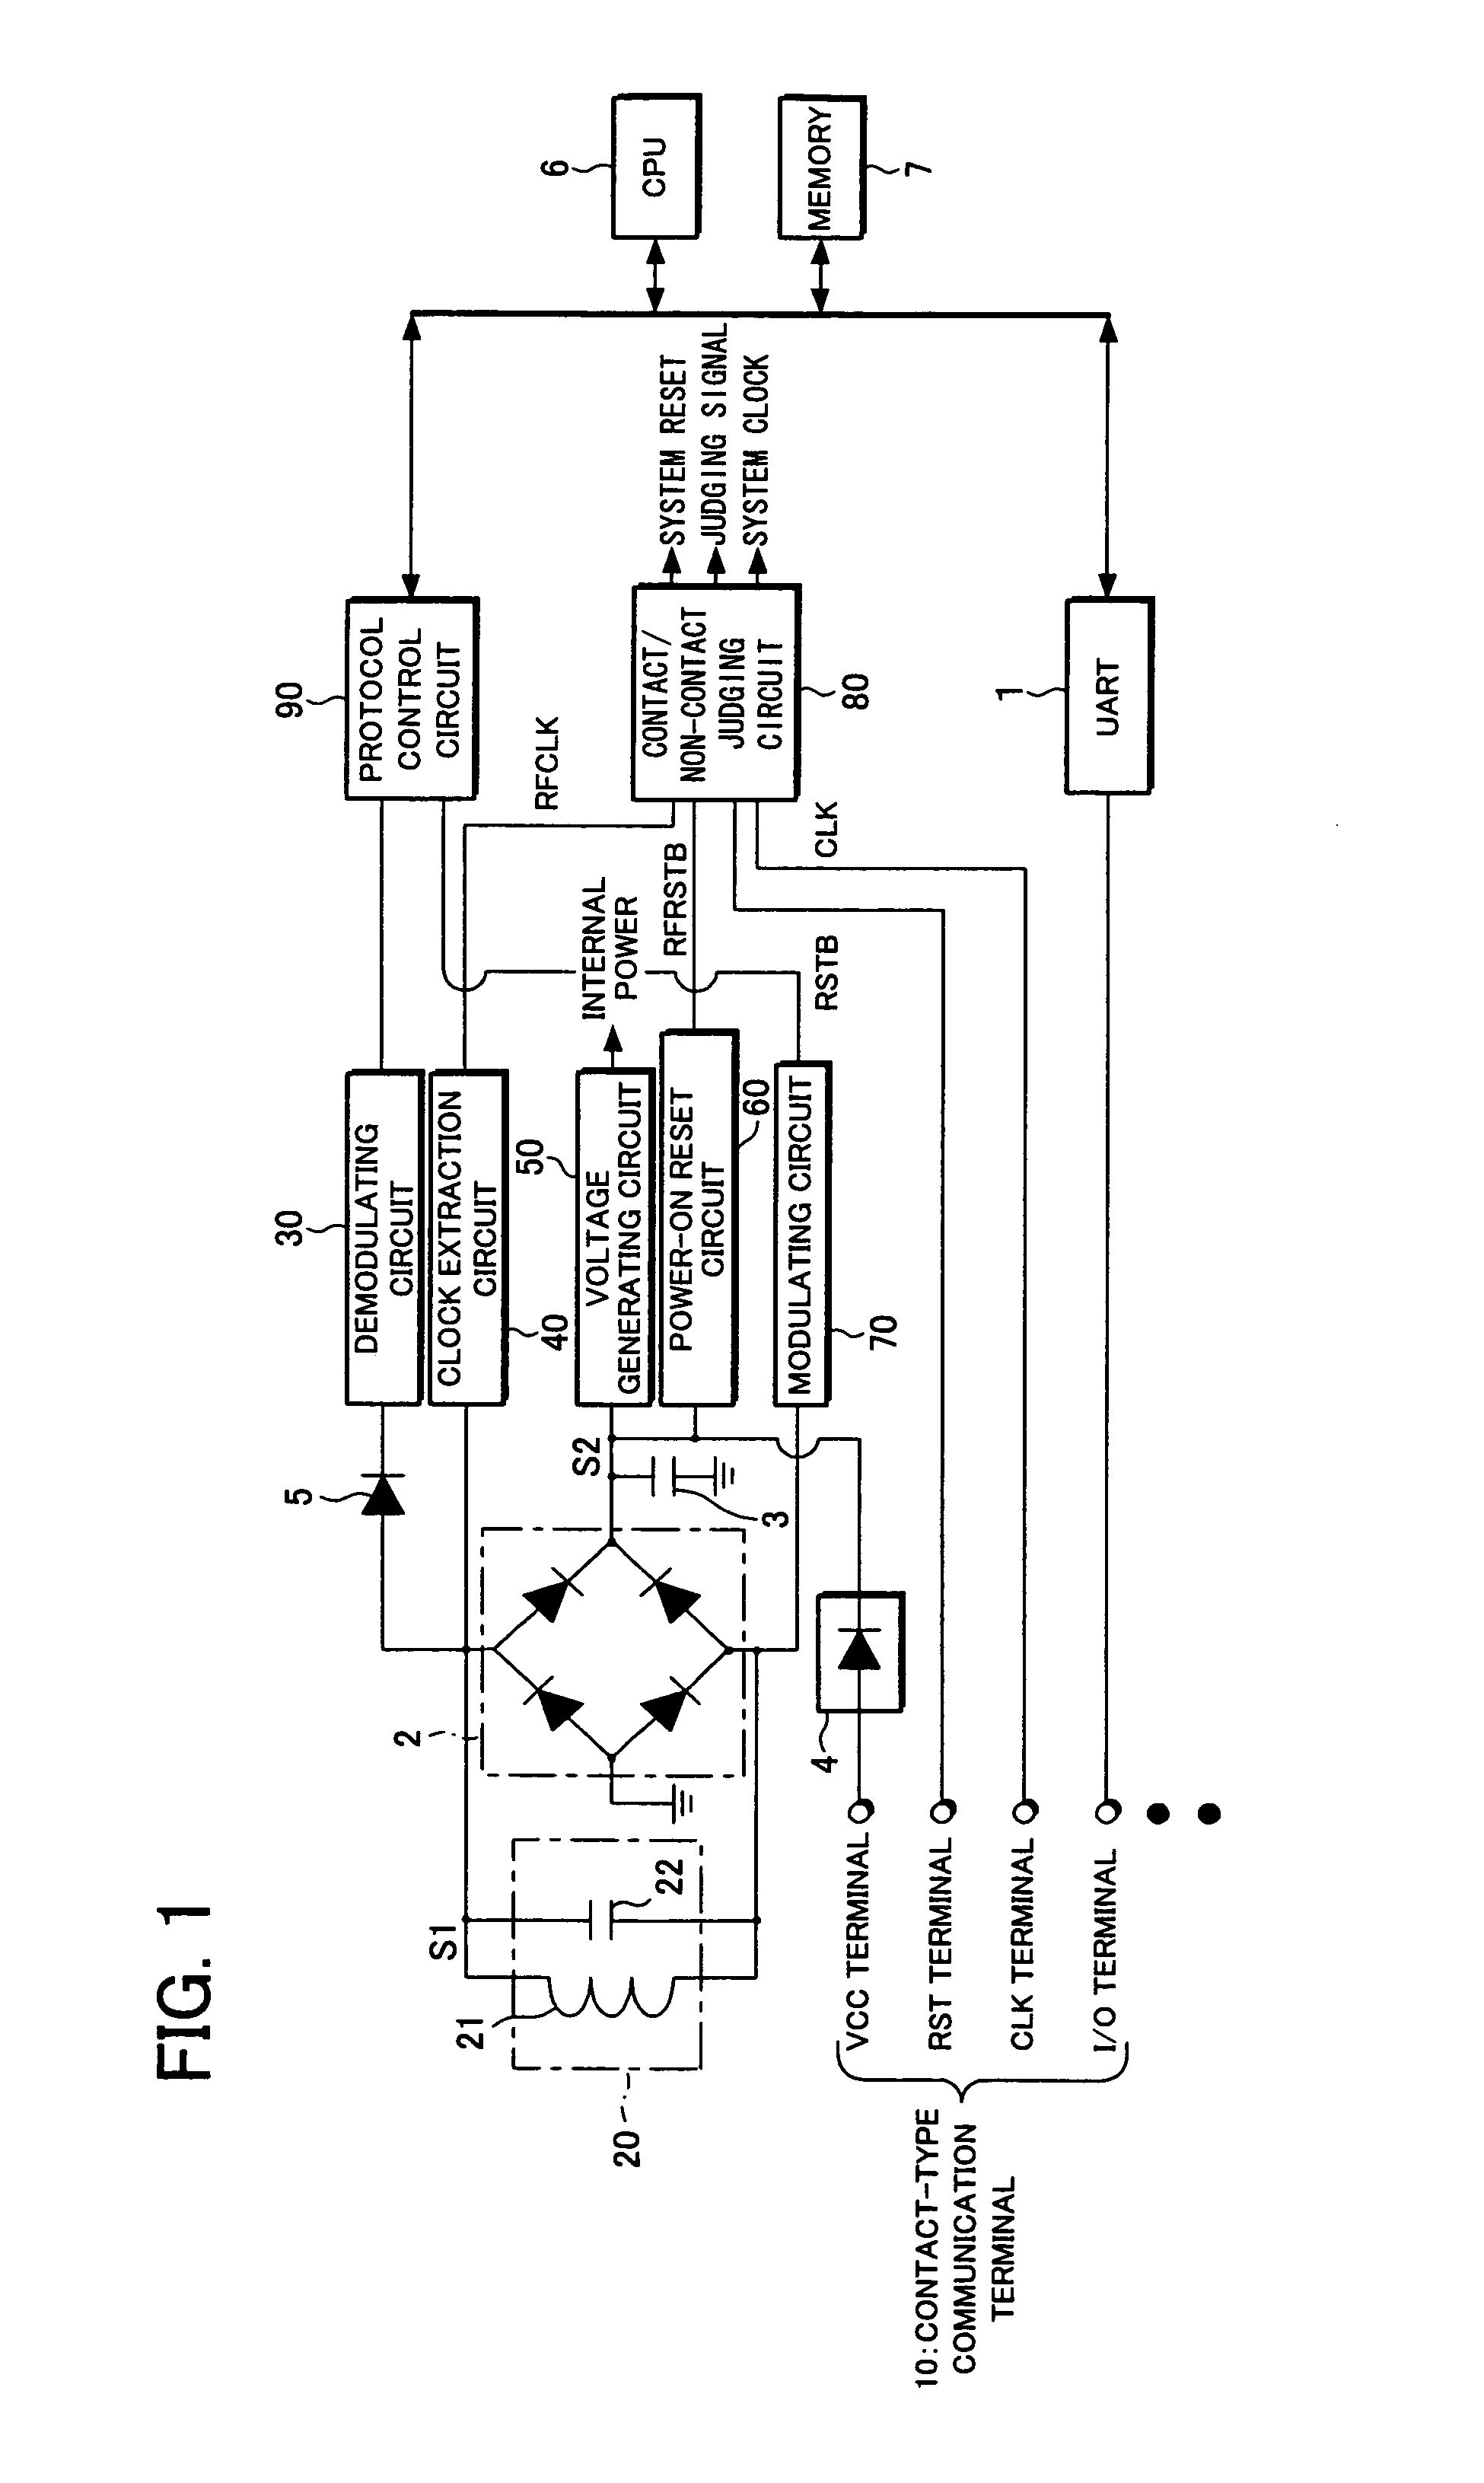 patente us combination type ic card patentes patent drawing